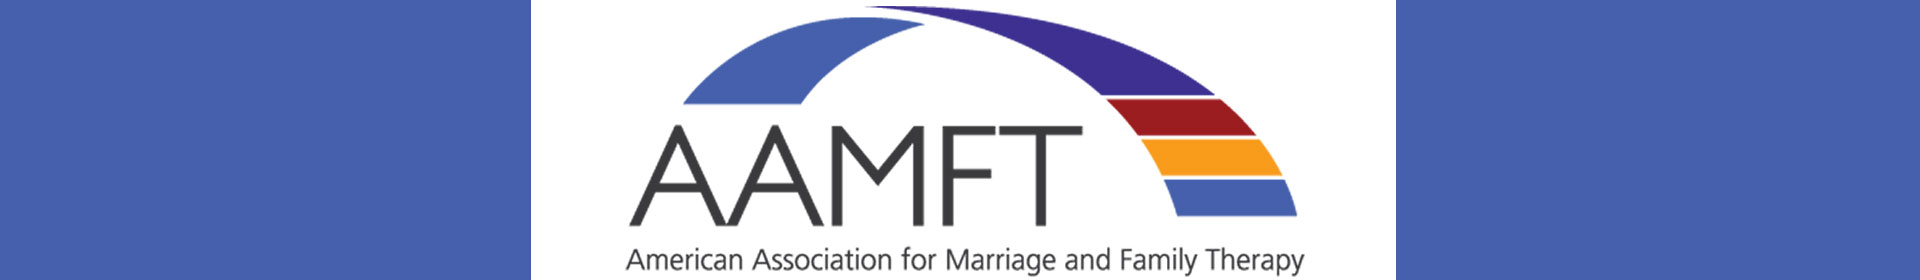 AAMFT 2020 Call for Reviewers Event Banner